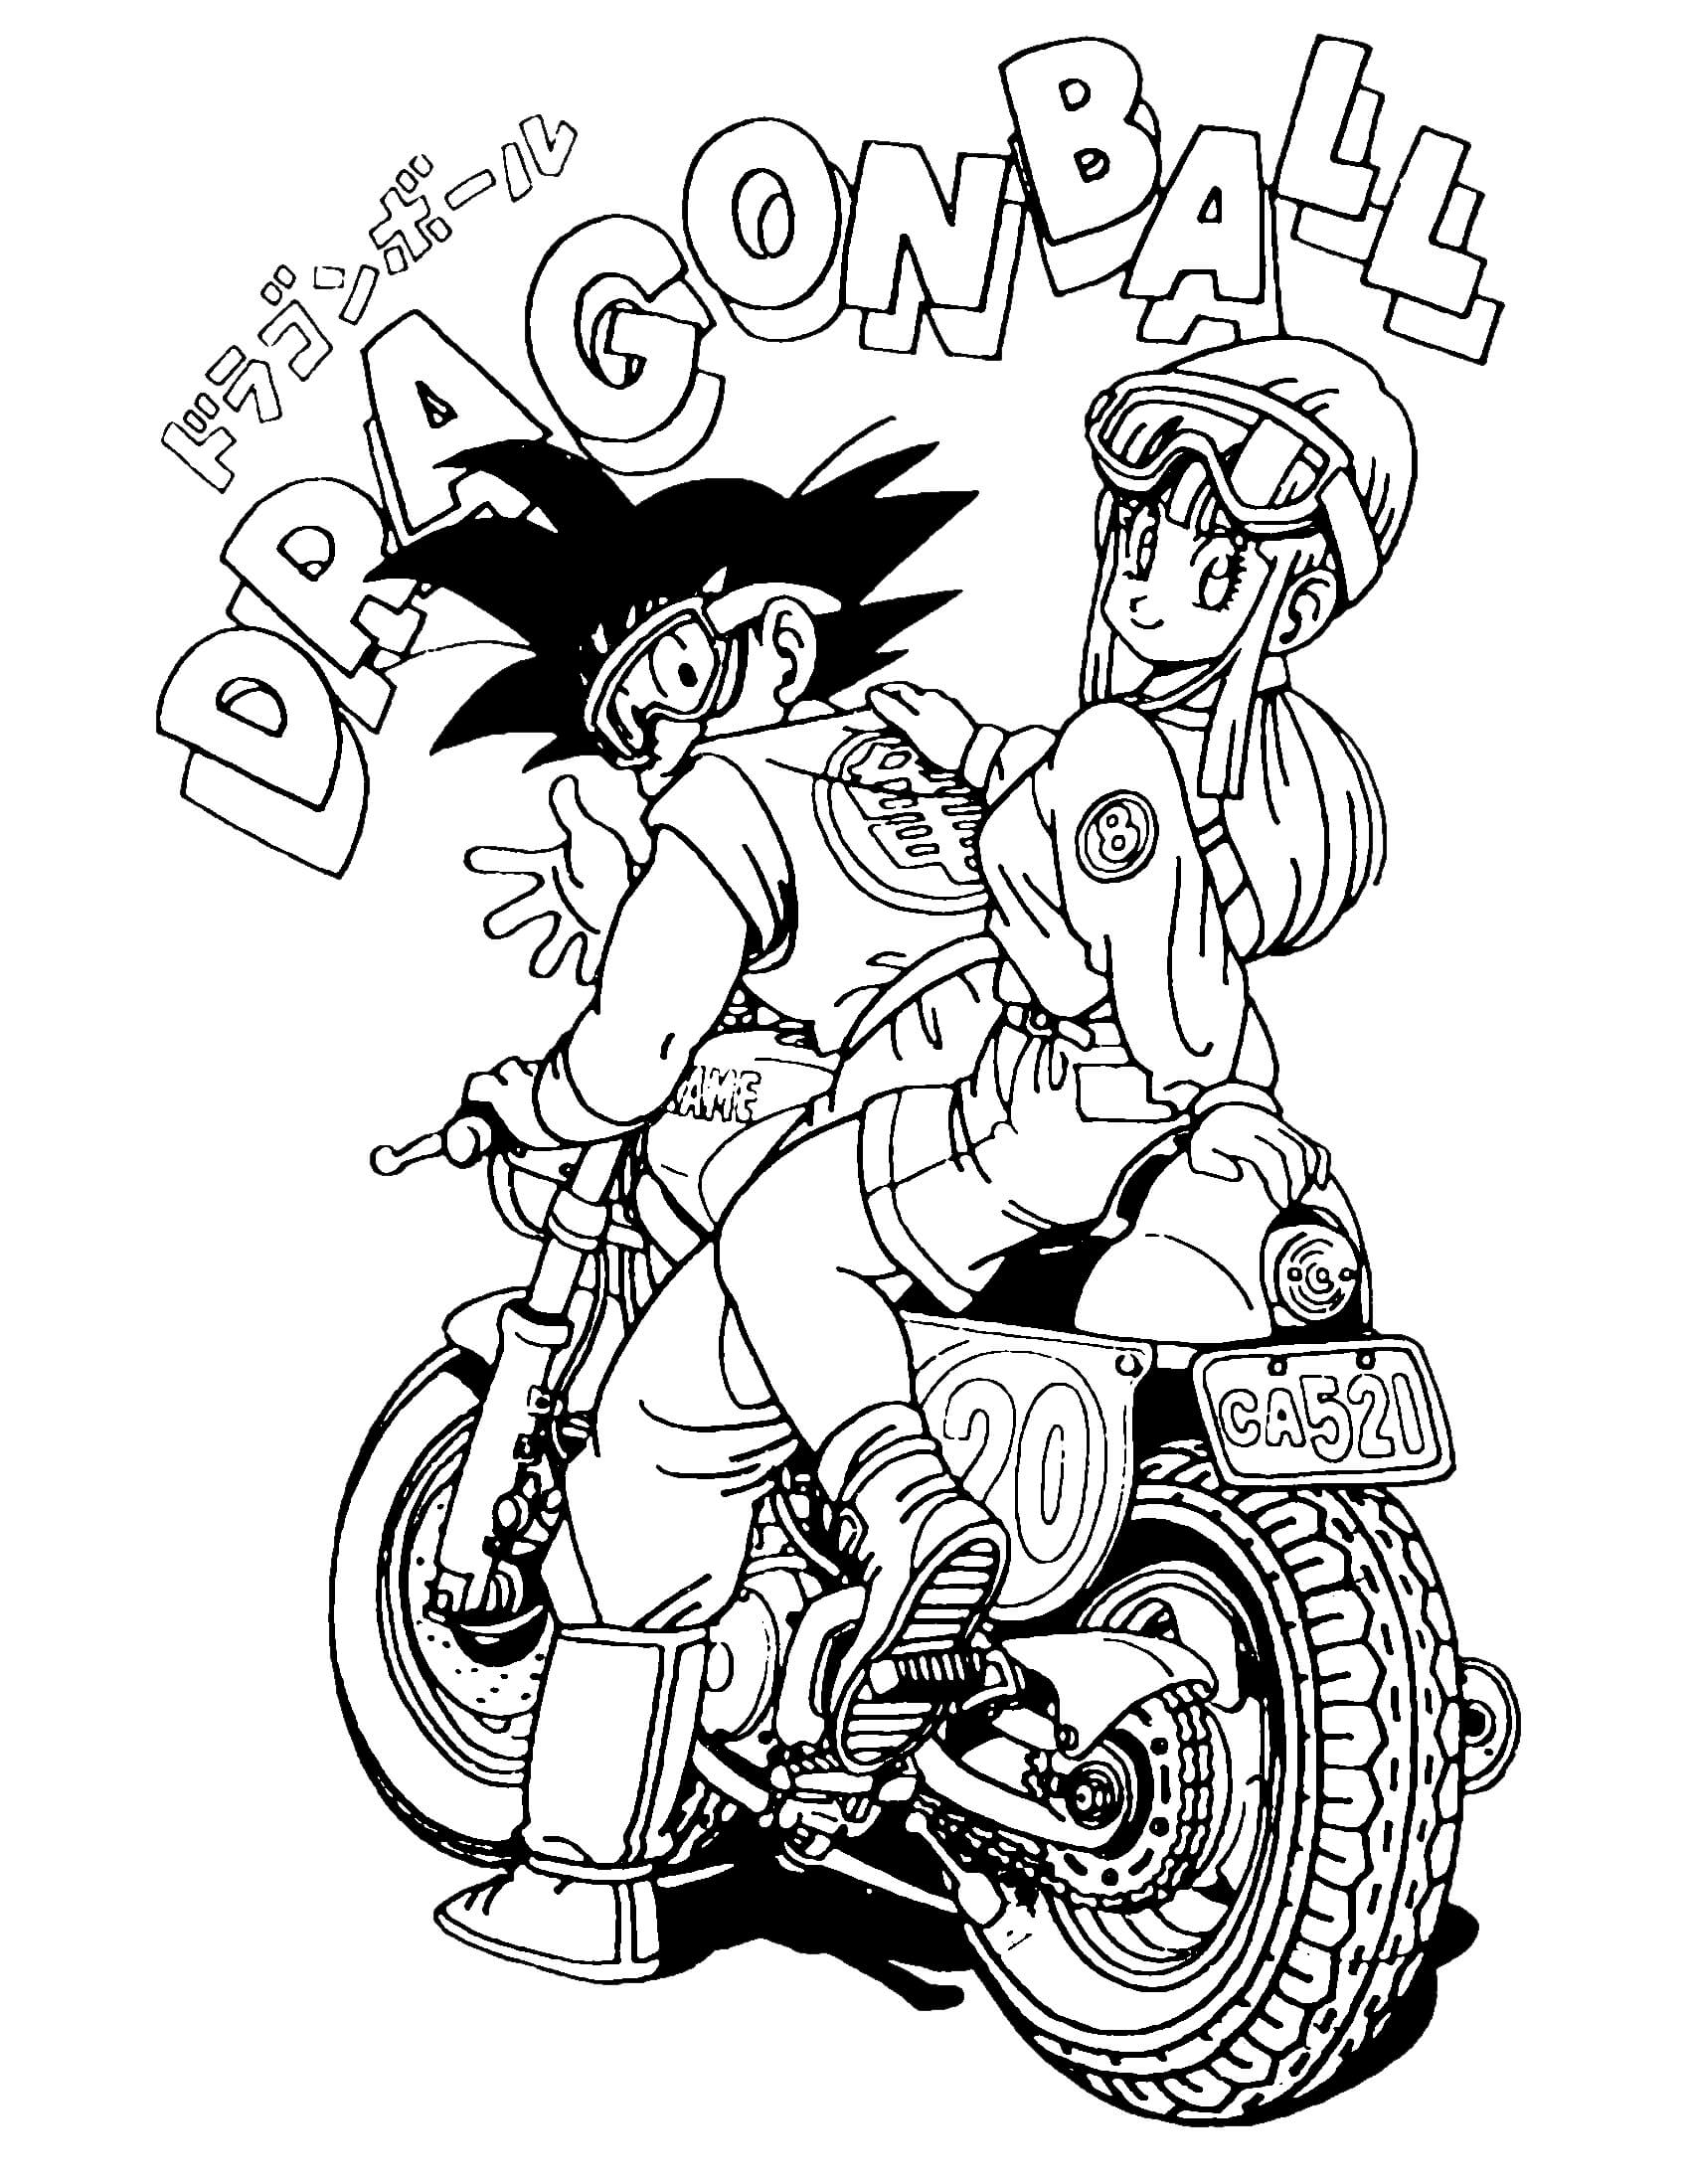 Dragon ball coloring pages best coloring pages for kids for Dragon ball z goku coloring pages